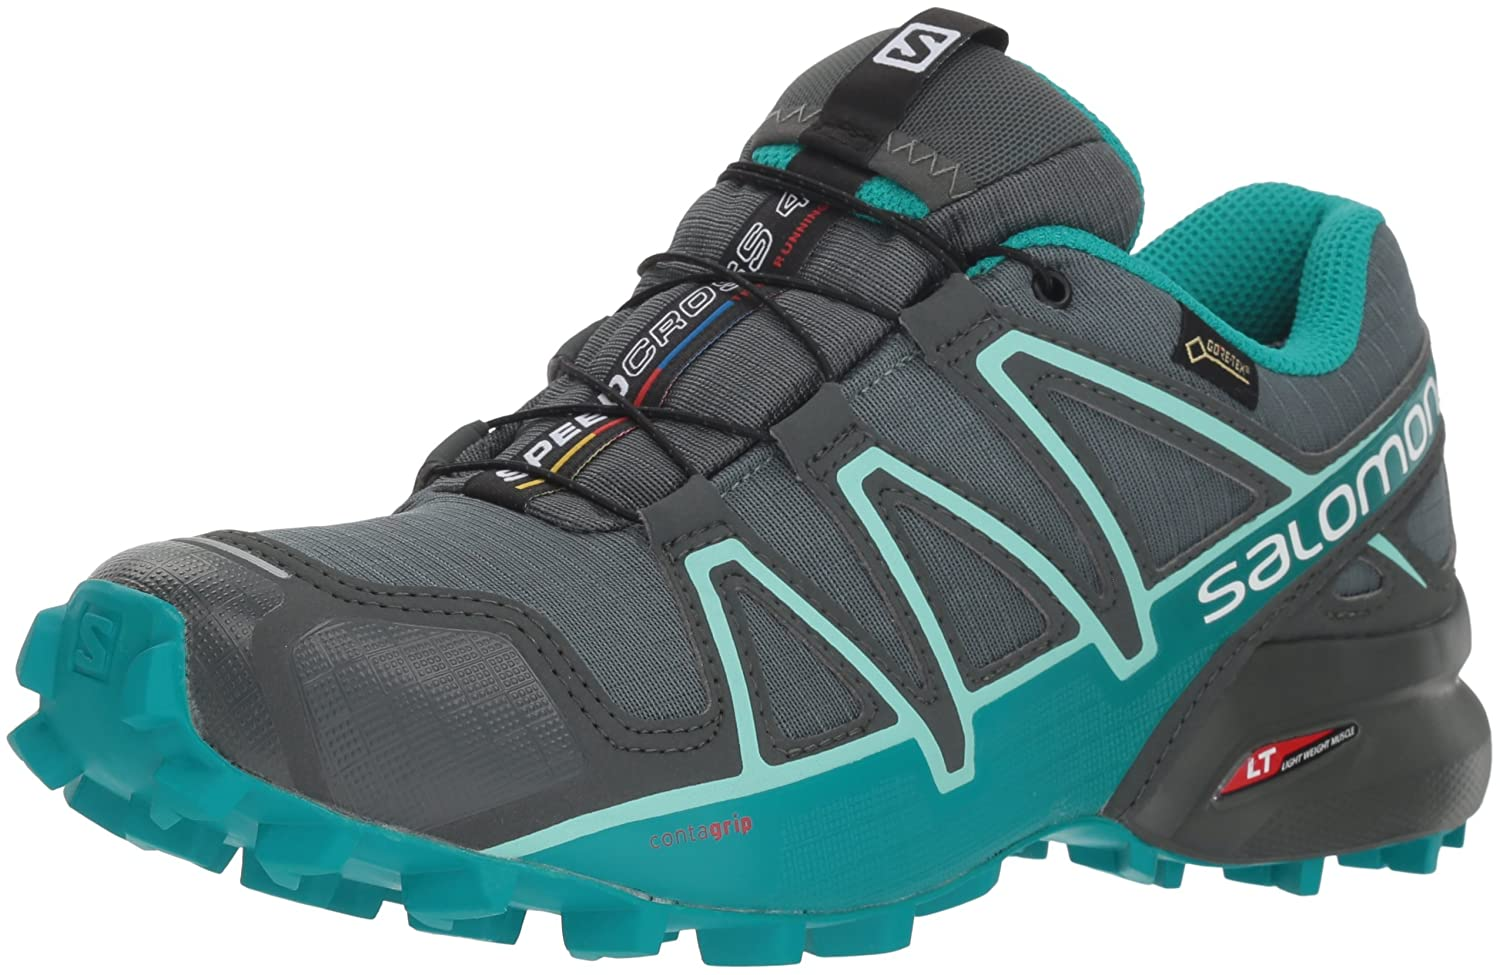 [サロモン] トレイルランニングシューズ SPEEDCROSS 4 4 10 GTX W レディース US|Balsam B078SZ4XYV Balsam Green/Tropical Green/Beach Glass 10 B(M) US 10 B(M) US|Balsam Green/Tropical Green/Beach Glass, ランコシチョウ:07dc6f35 --- demo.marketcentral.in